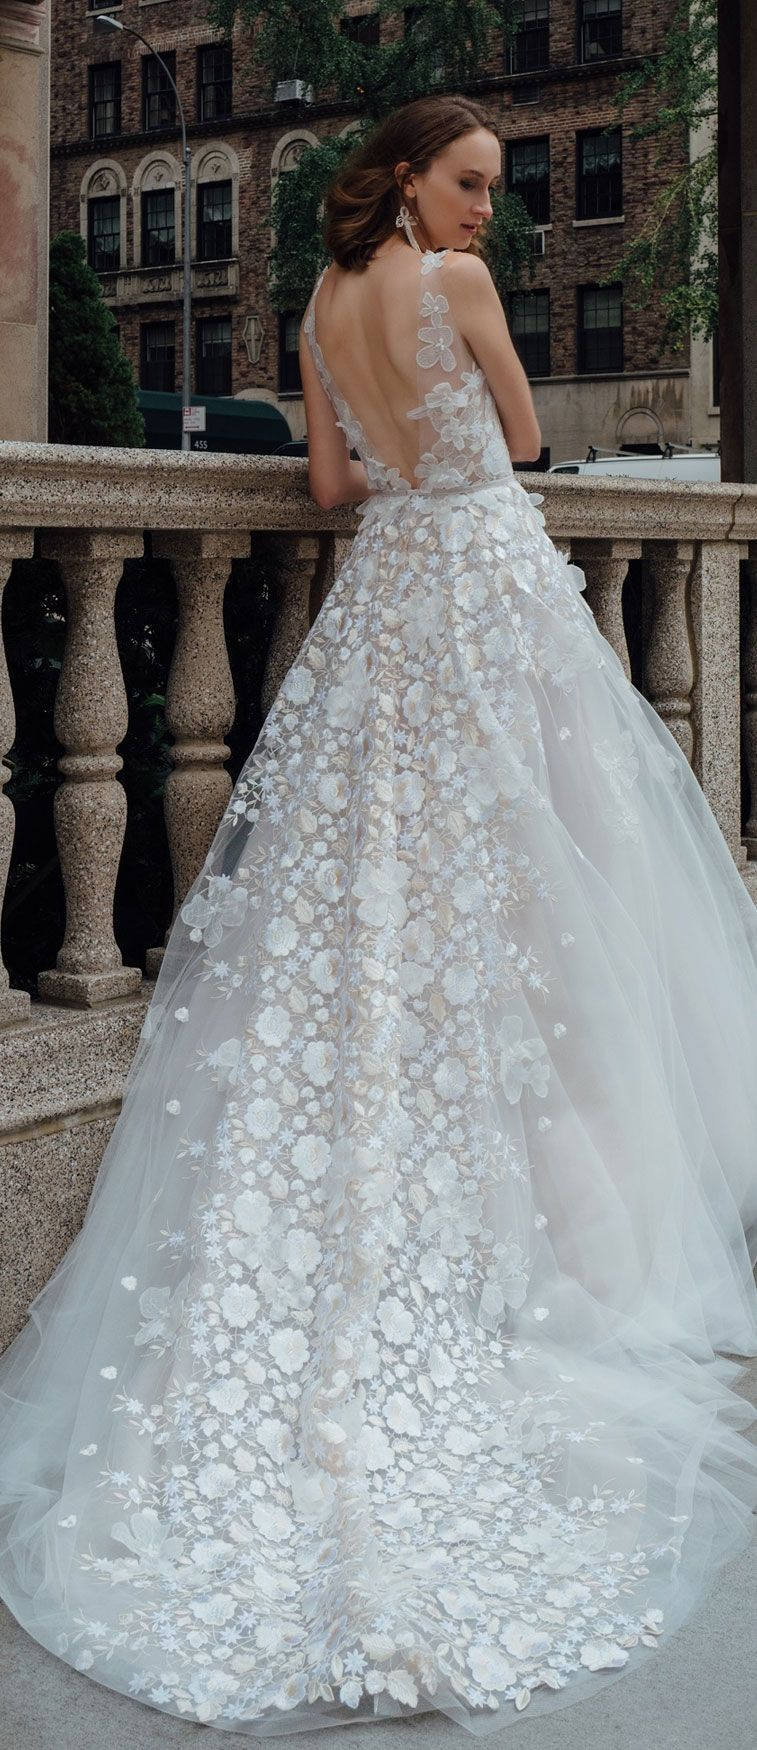 Wedding Dress Inspiration – Mira Zwillinger Autumn/Winter 2019 Queen of Ice Bridal Collection